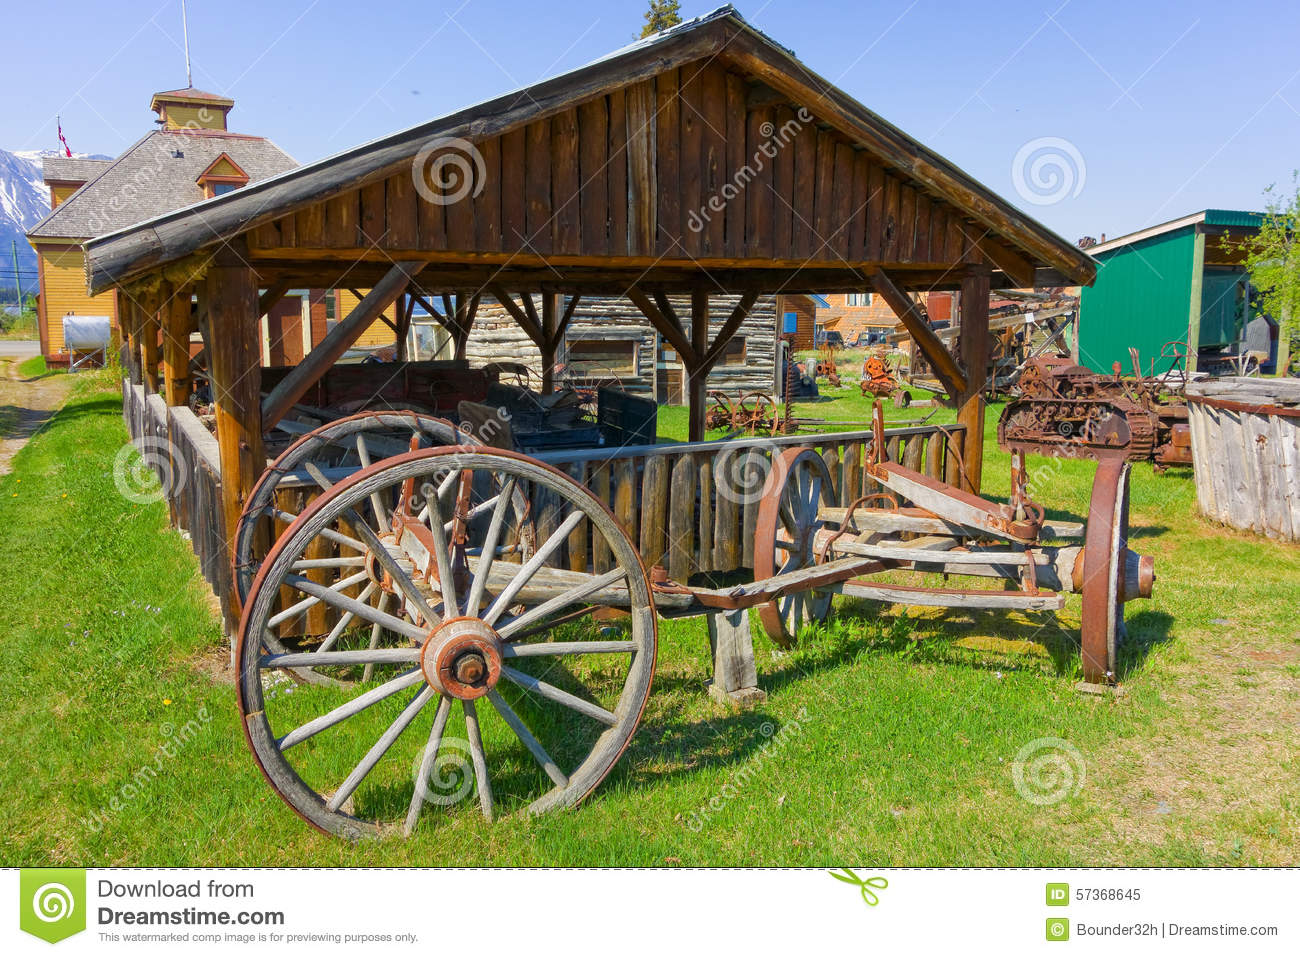 An Antique Wagon On Display At An Outdoor Museum In